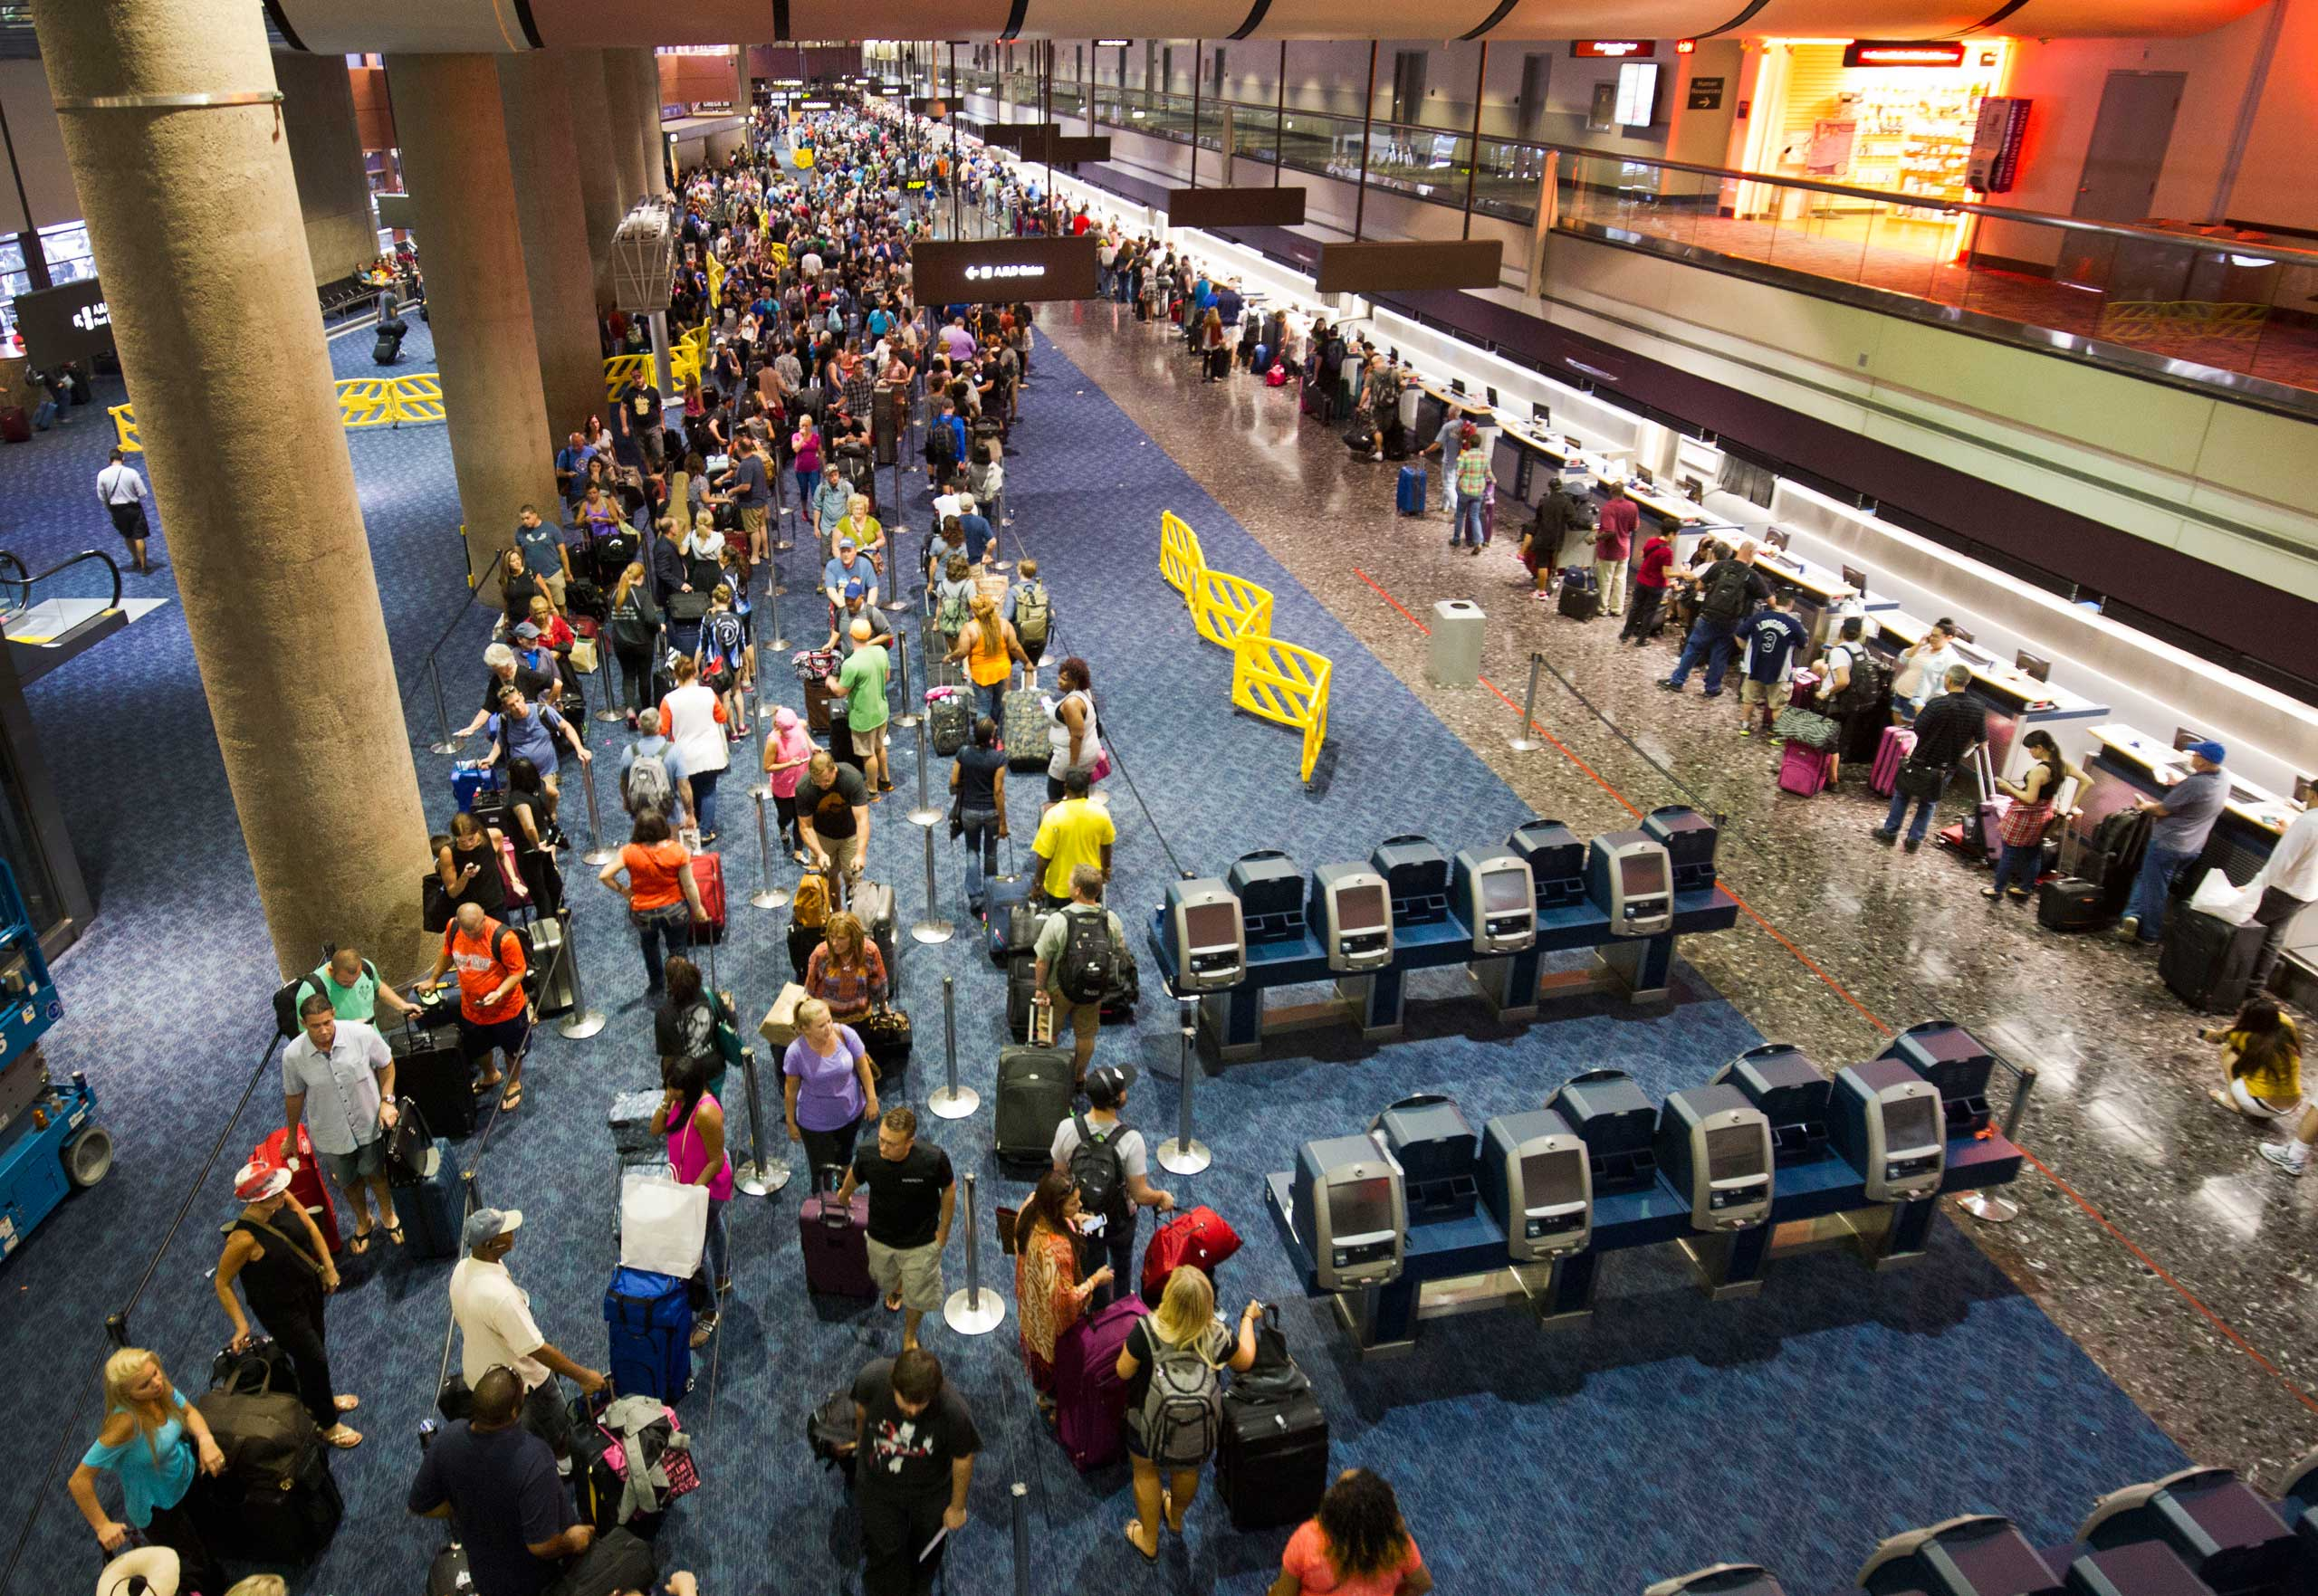 Departing Southwest Airlines passengers wait in line at McCarran International Airport in Las Vegas, Oct. 11, 2015.